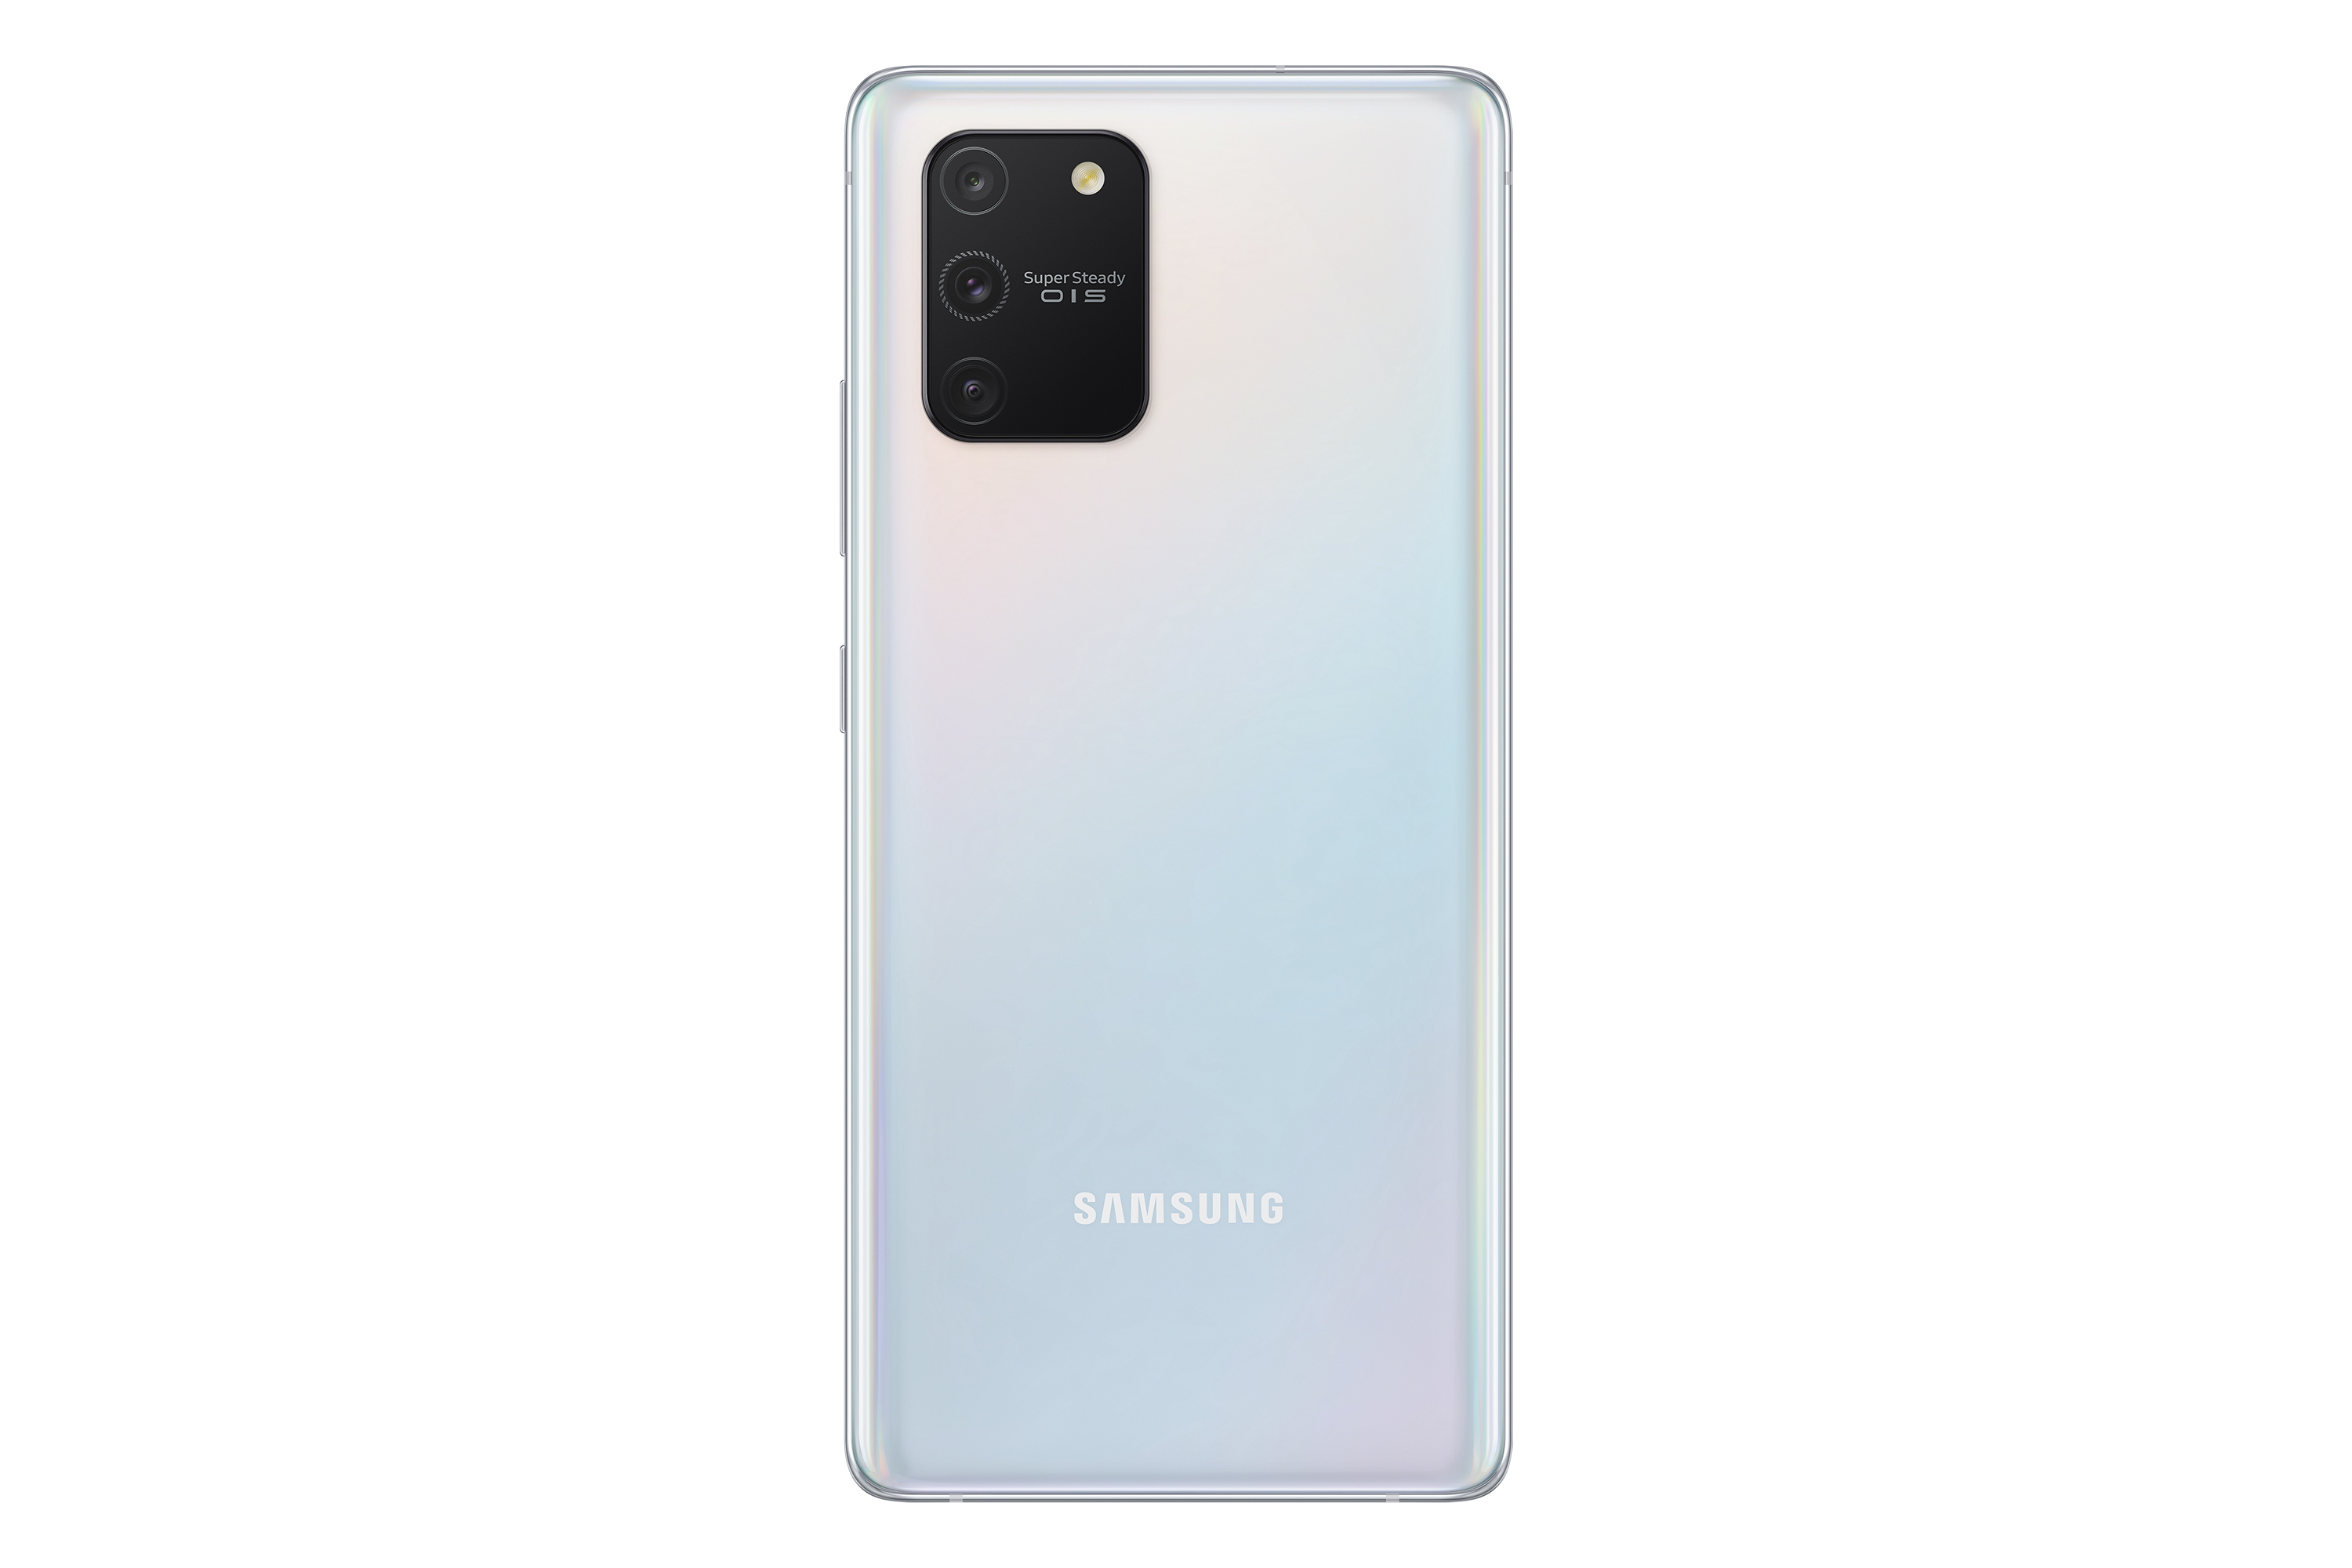 Samsung launches budget versions of the Galaxy S10 and Note 10 smartphones